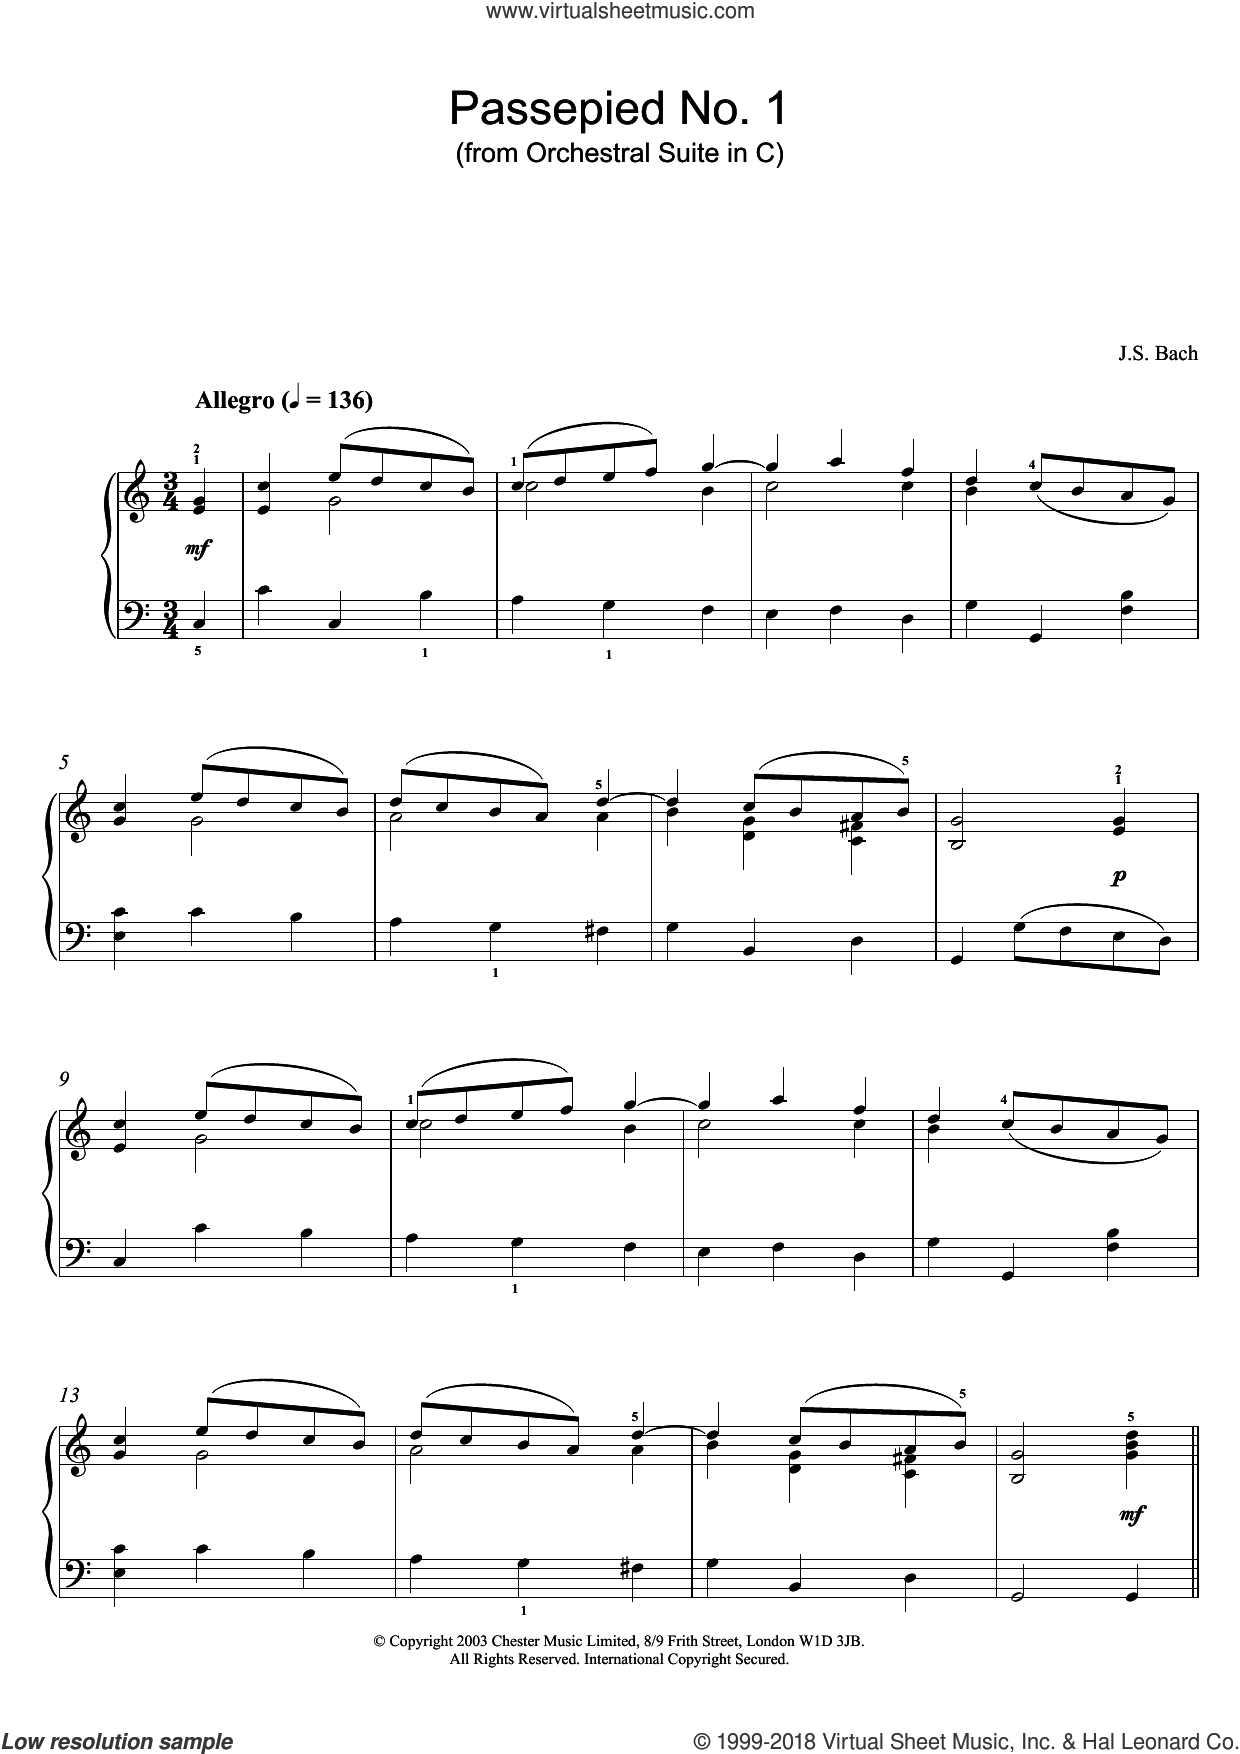 Passepied No. 1 (from Orchestral Suite In C) sheet music for piano solo by Johann Sebastian Bach. Score Image Preview.